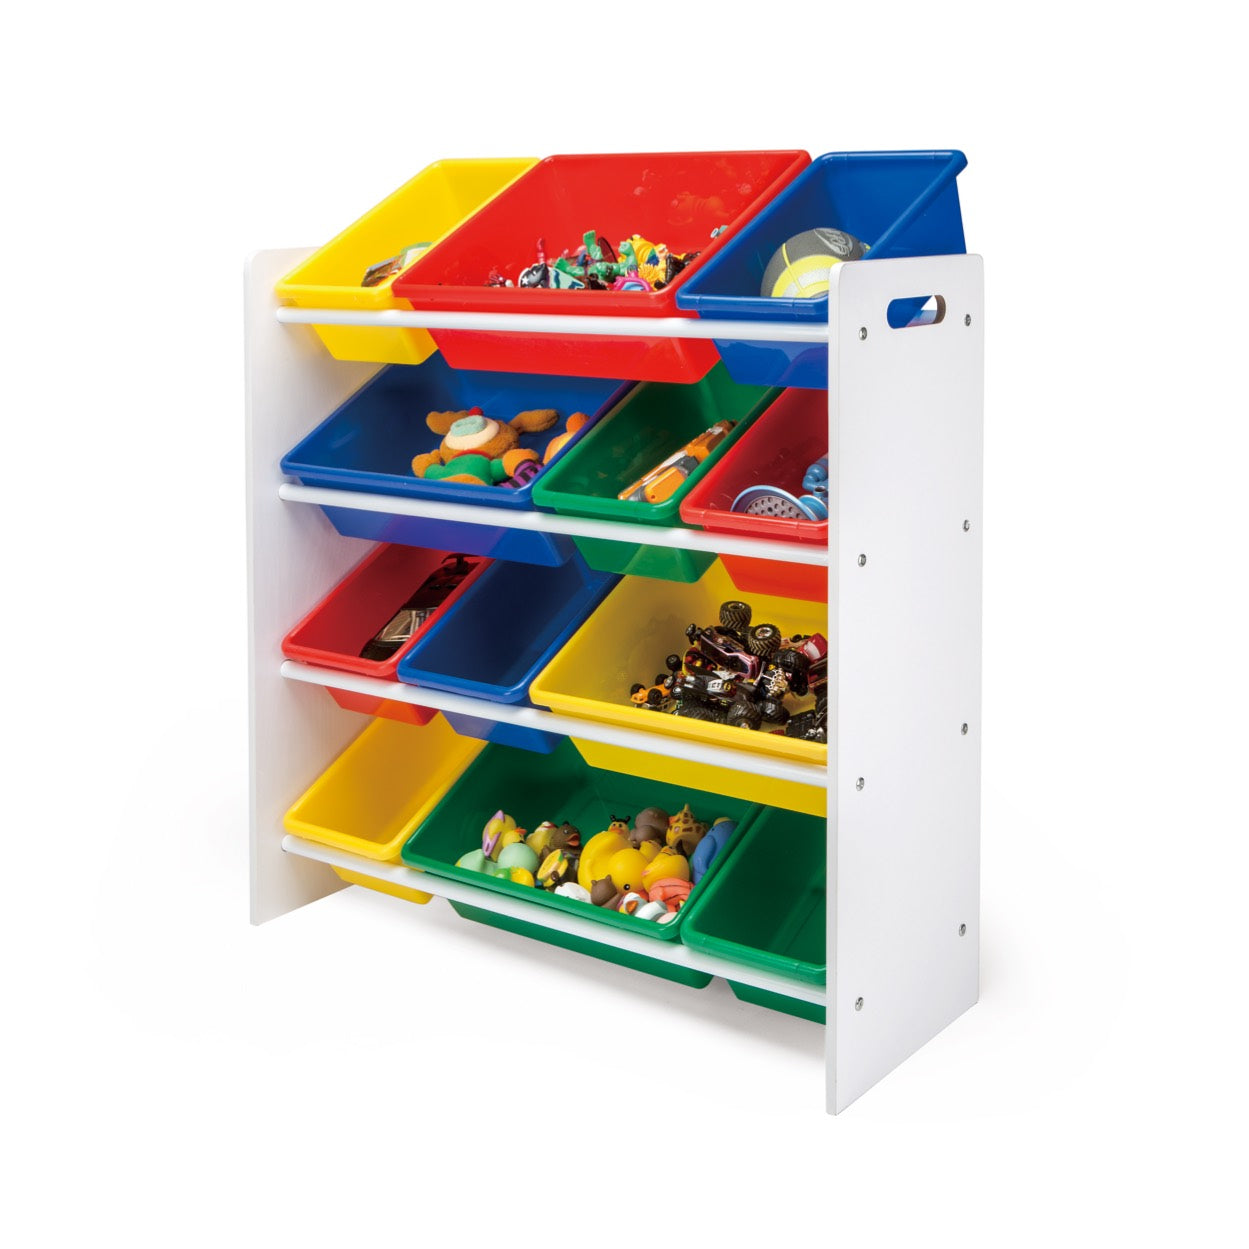 Toy Storage Organizer